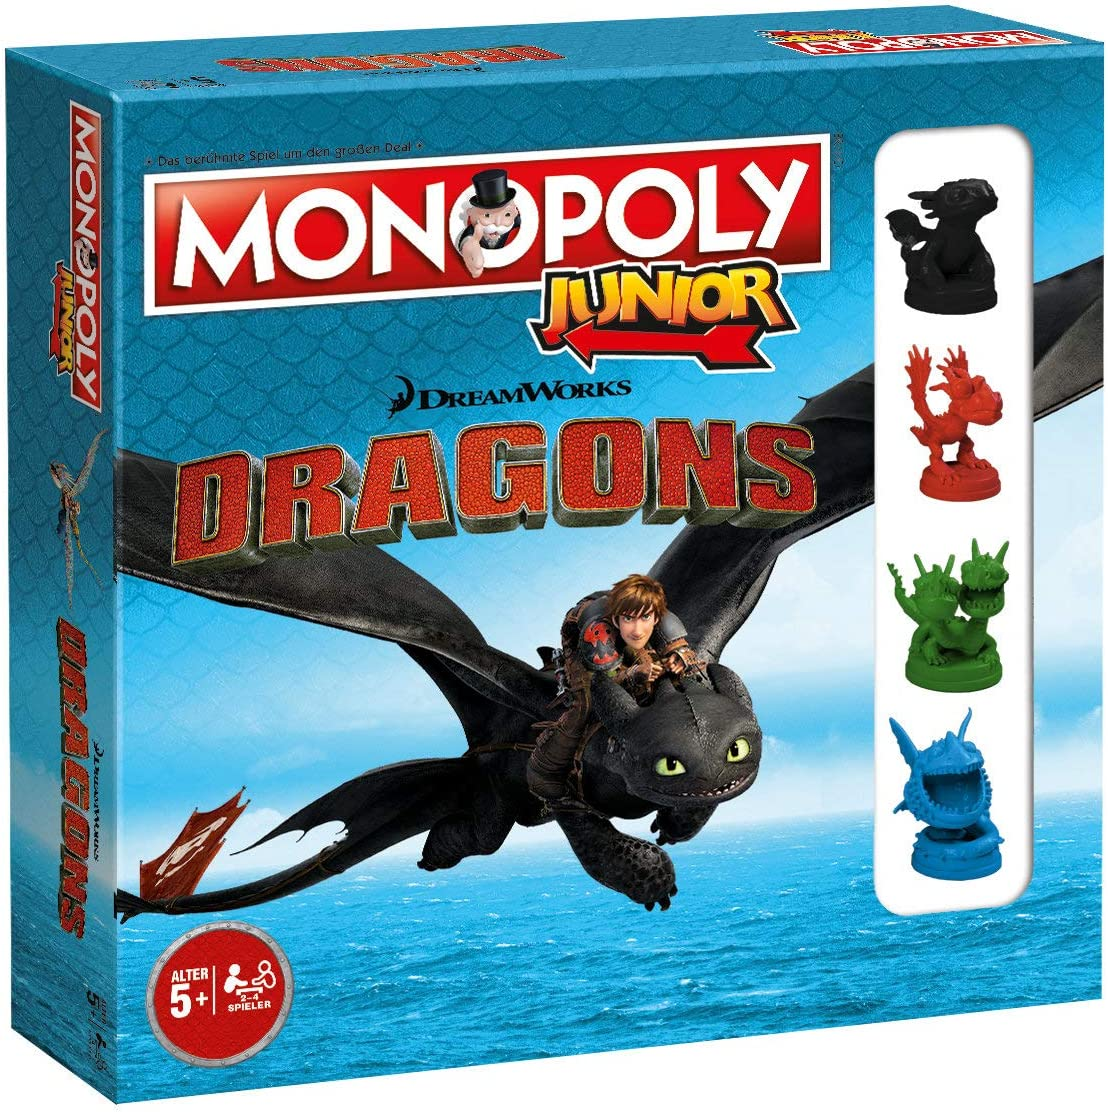 Monopoly Junior Dragons Collectors Edition: Amazon.es: Juguetes y juegos